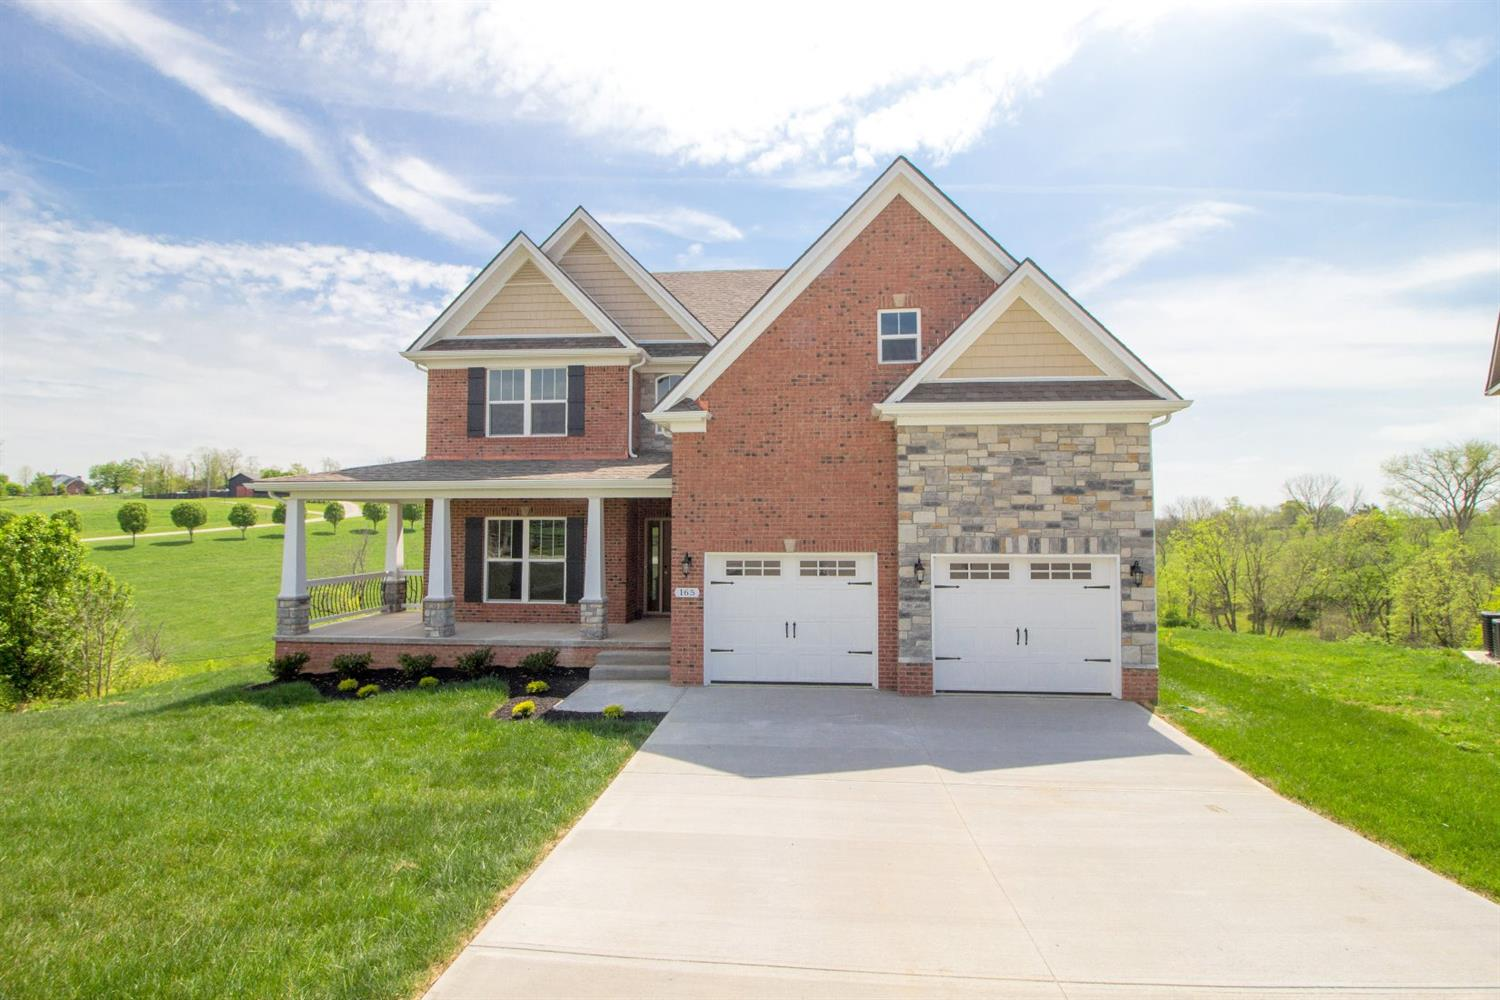 Brand%20new%20and%20completed%20Payne%20Home%20with%204%20bedrooms%20on%20cul-de-sac,%201-acre%20lot%20on%20a%20full%20basement.%201st%20floor%20master,%20game%20room%20upstairs,%20large%20kitchen%20with%20island%20and%20all%20stainless%20appliances%20including%20fridge,%20granite%20in%20kitchen%20and%20master%20bath.%202-story%20great%20room%20adds%20a%20true%20open%20feel%20and%20boast%20the%20wow%20factor!%20HERS%20rated%20for%20energy%20efficiency,%20tons%20of%20hardwood%20flooring,%20wrought%20iron%20spindles,%20stainless%20appliances,%20formal%20dining,%20mud%20room%20off%20garage.%20Awesome%20deck%20w/%20stairs%20overlooking%20countryside%20and%20a%20gorgeous%20covered%20front%20porch%20for%20relaxing.%20Craftsman%20stone%20columns,%20board%20and%20batton%20shutters,%20cul-de%20sac!%20Less%20than%202%20miles%20from%20Richmond%20Centre.%20Gorgeous%20features!%20Move%20in%20before%20school%20starts!